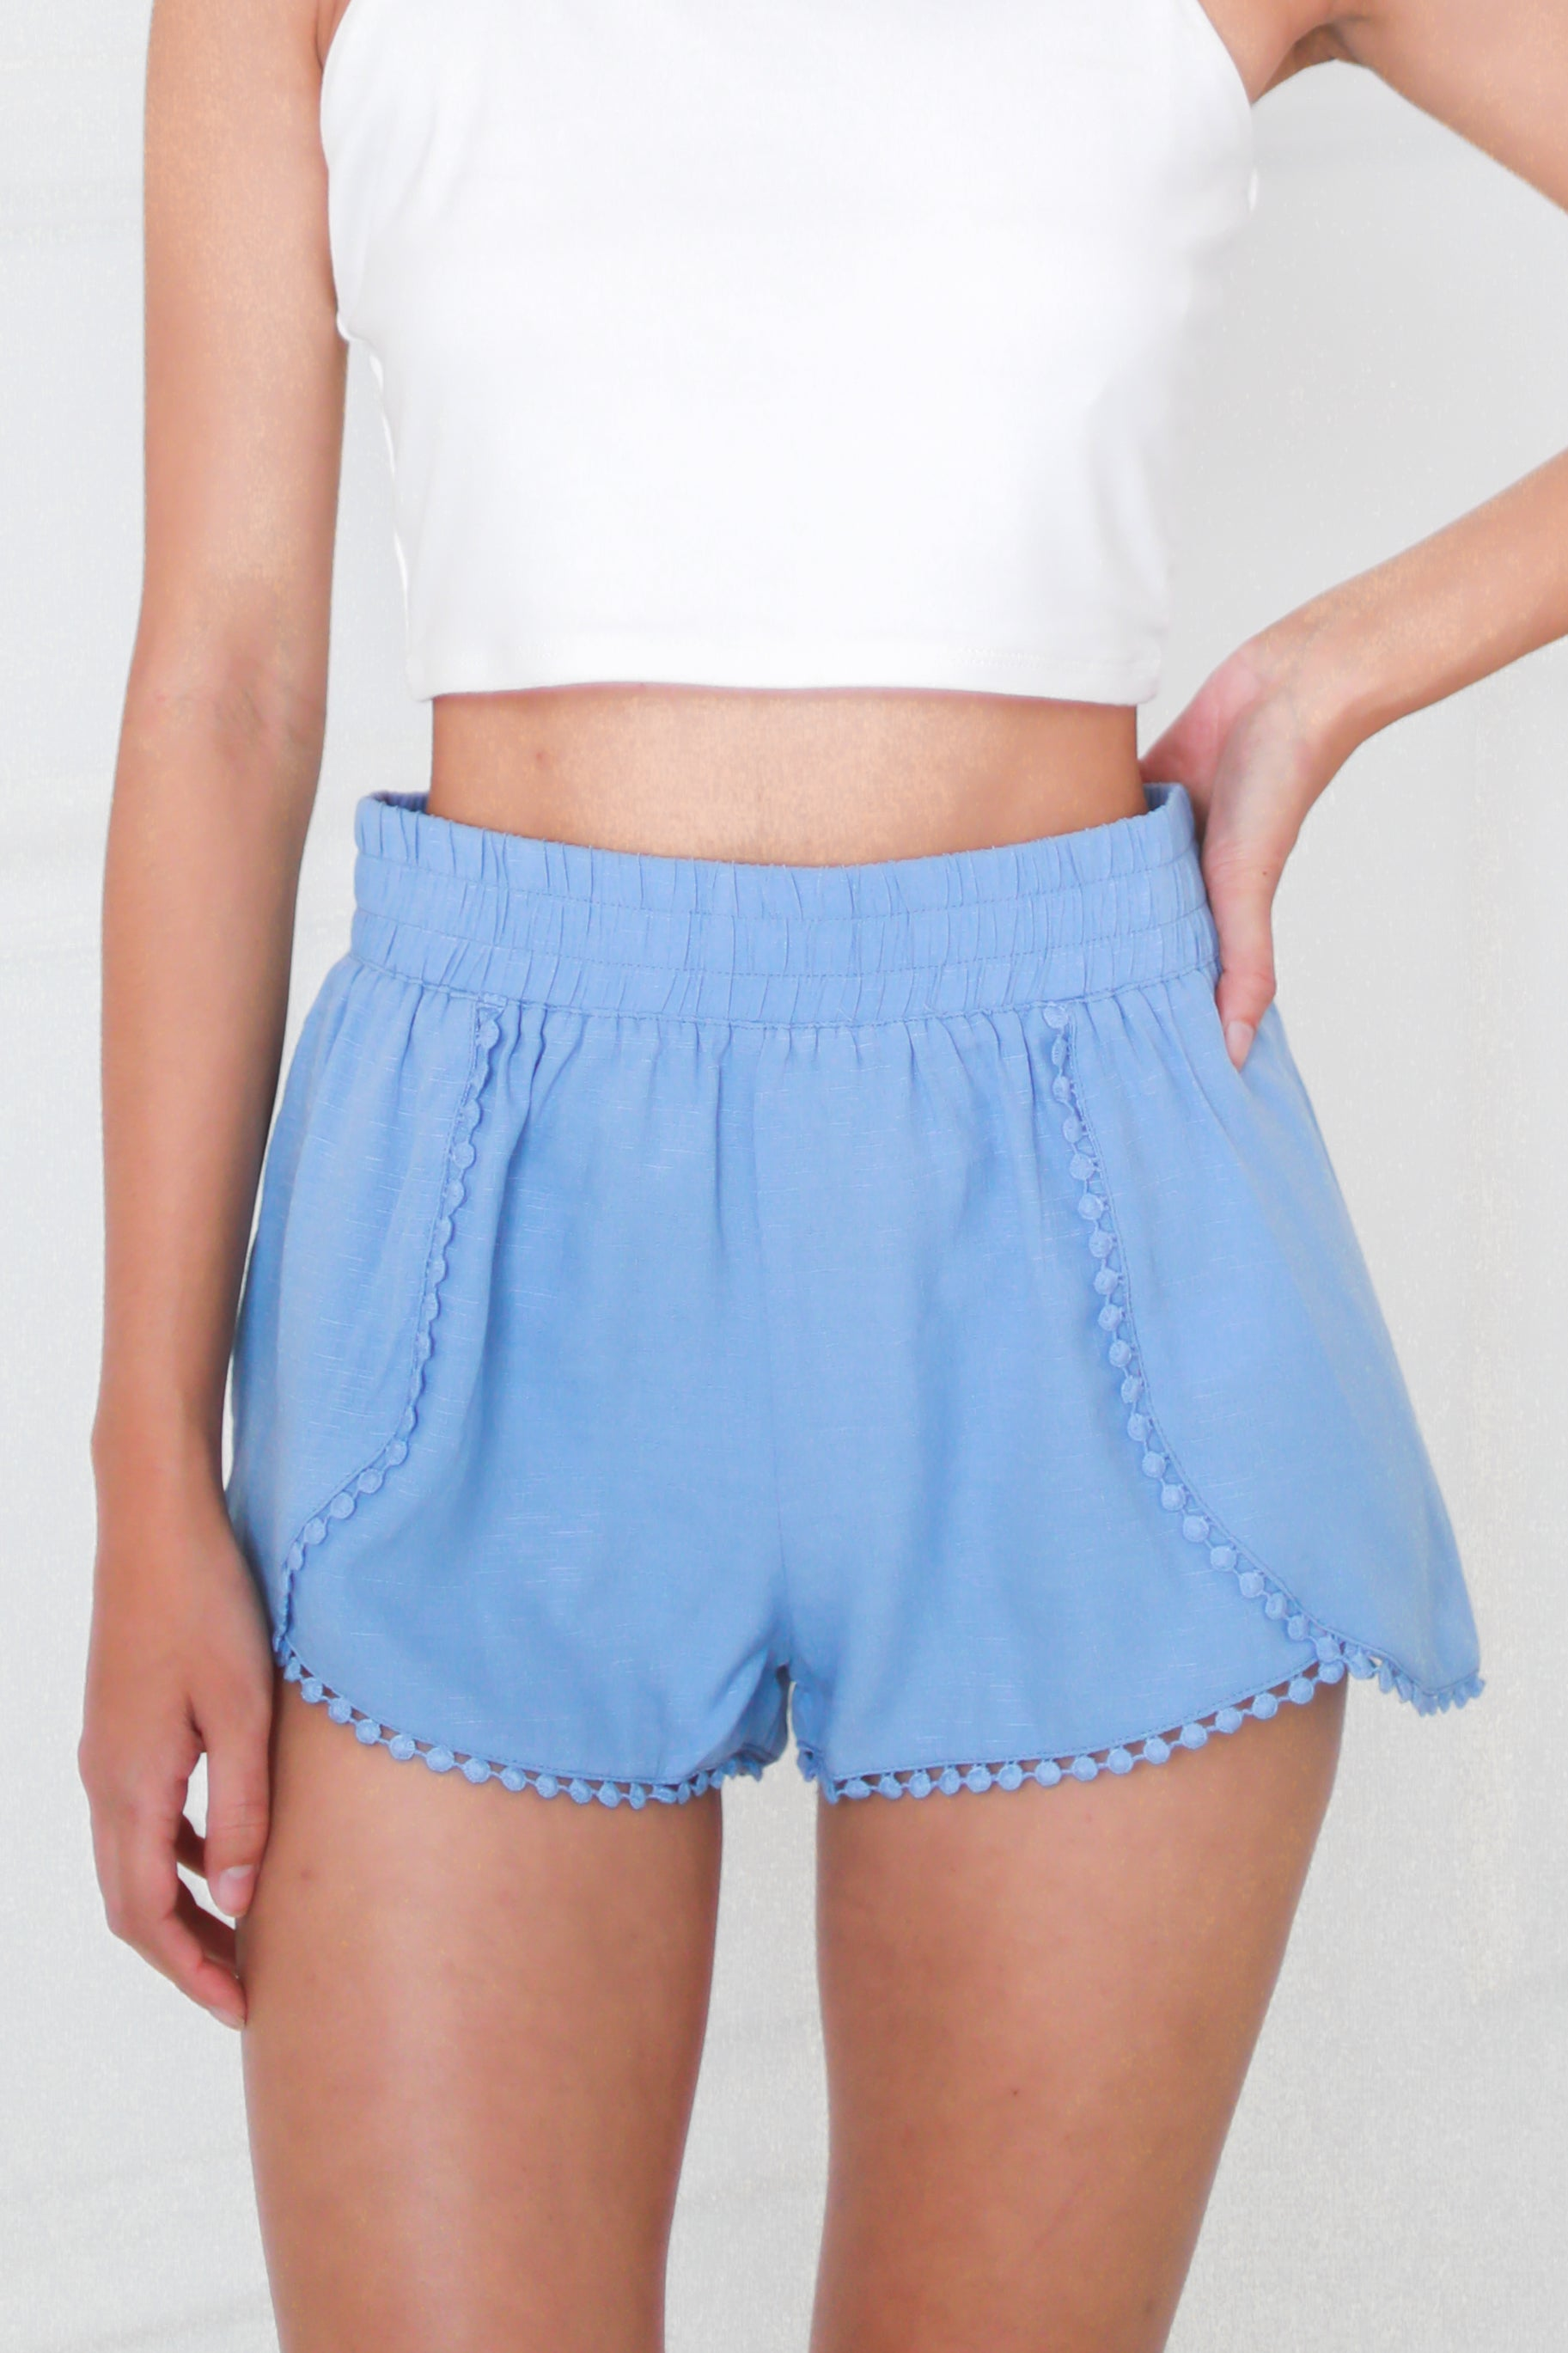 INTO THE BLUE SHORTS